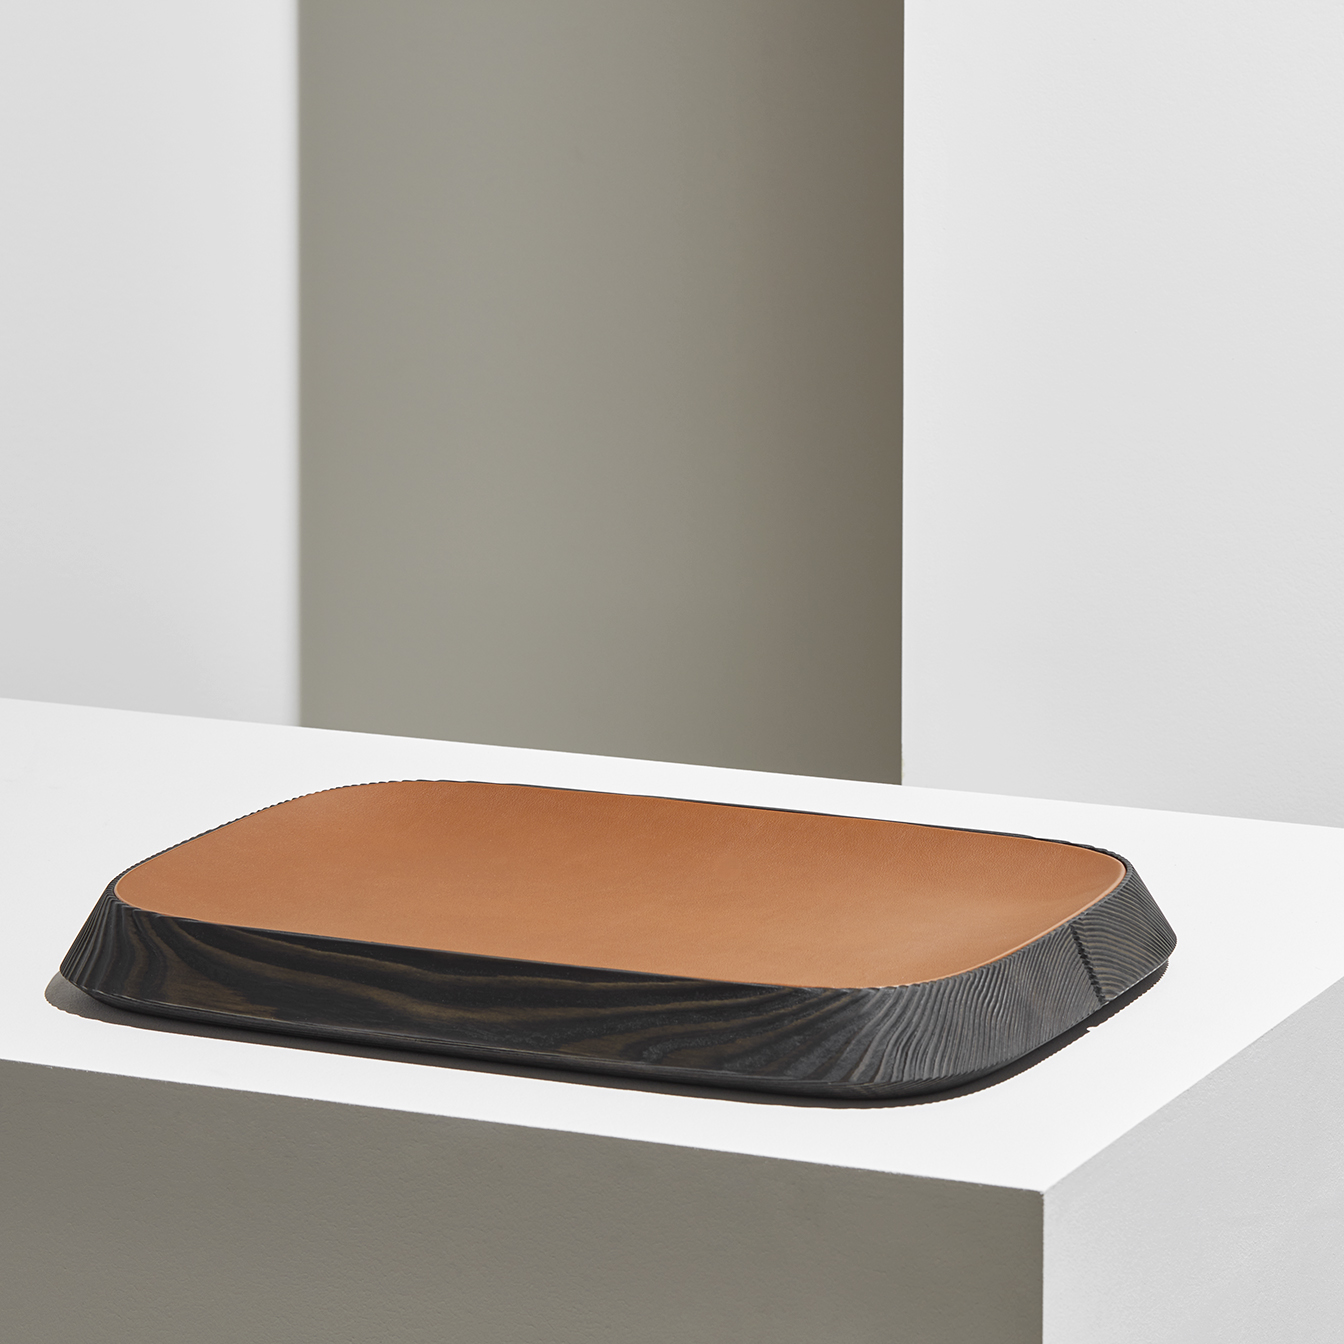 GAME-ON-tray-Flavien-Delbergue-Collection-Particuliere